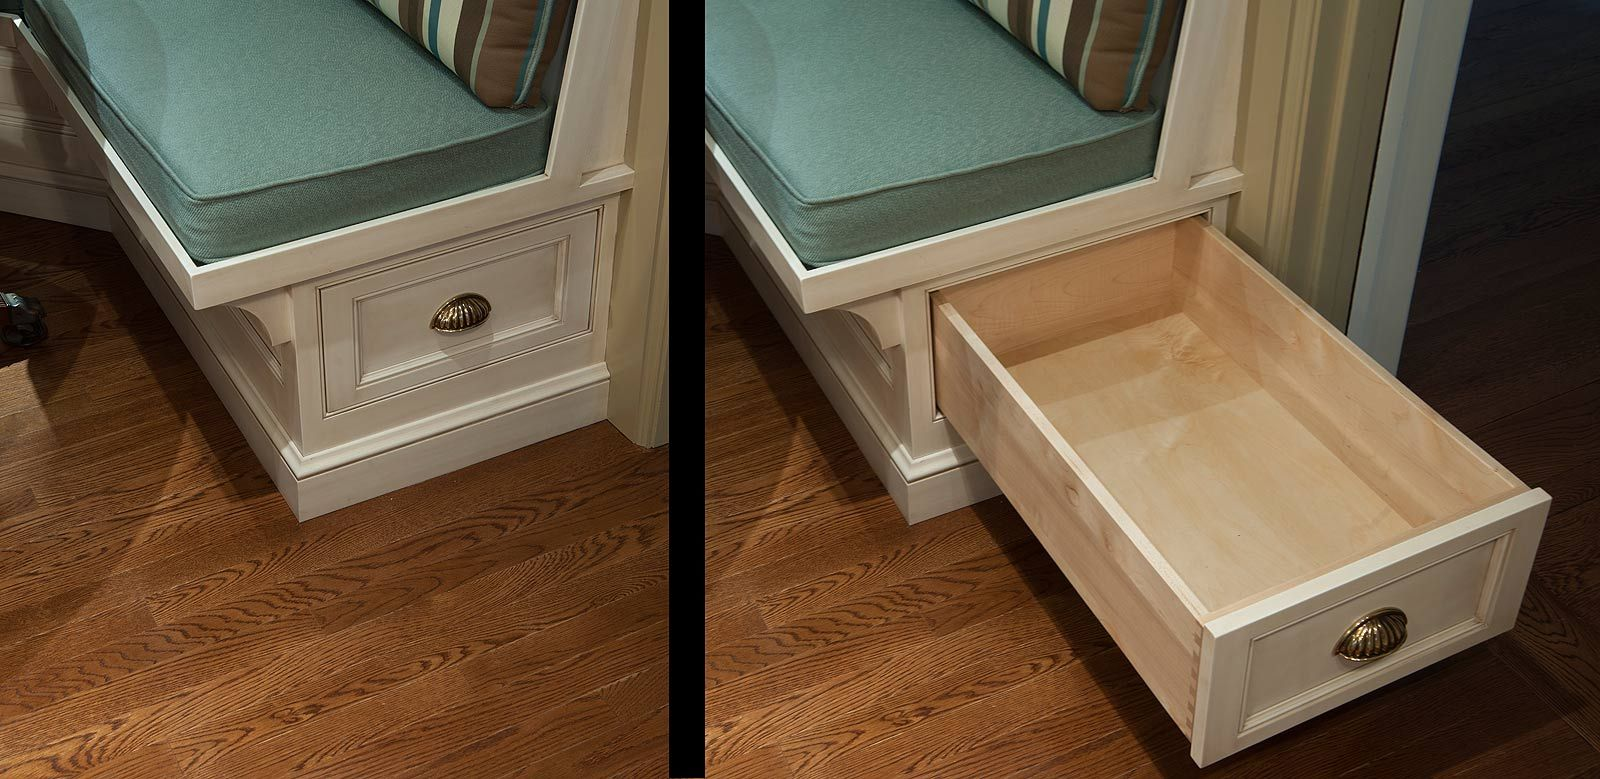 Custom Bench Seat With Storage Drawer Cabinet